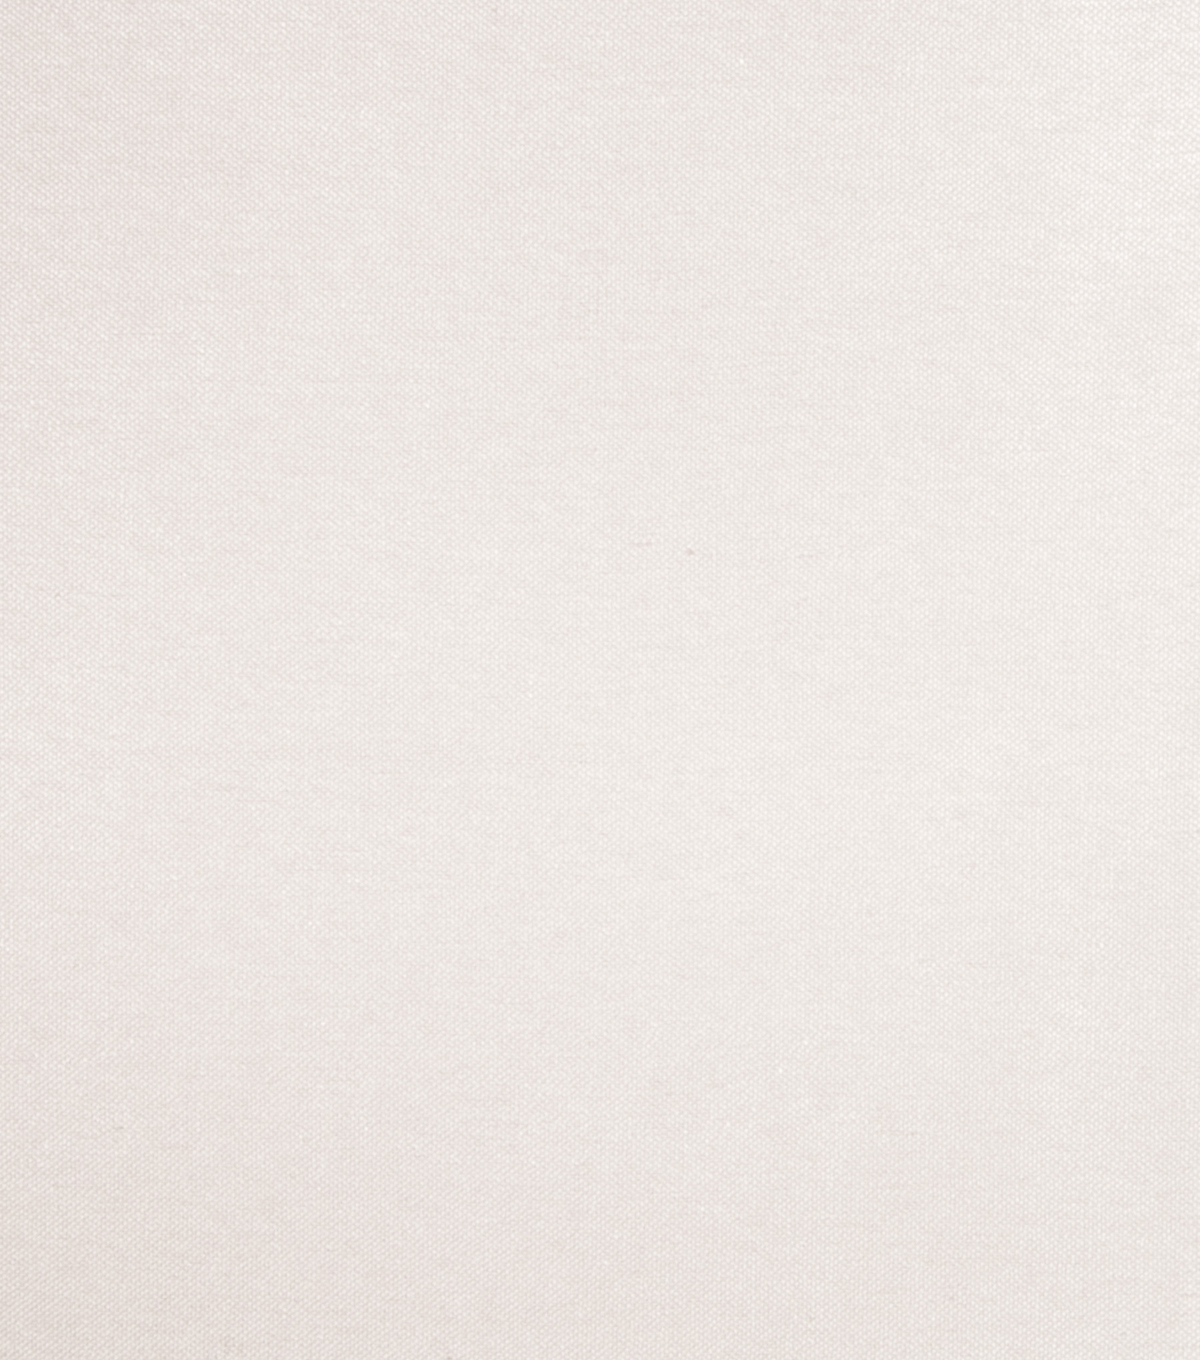 Home Decor 8\u0022x8\u0022 Fabric Swatch-Jaclyn Smith Cobblestone Boucle Cream